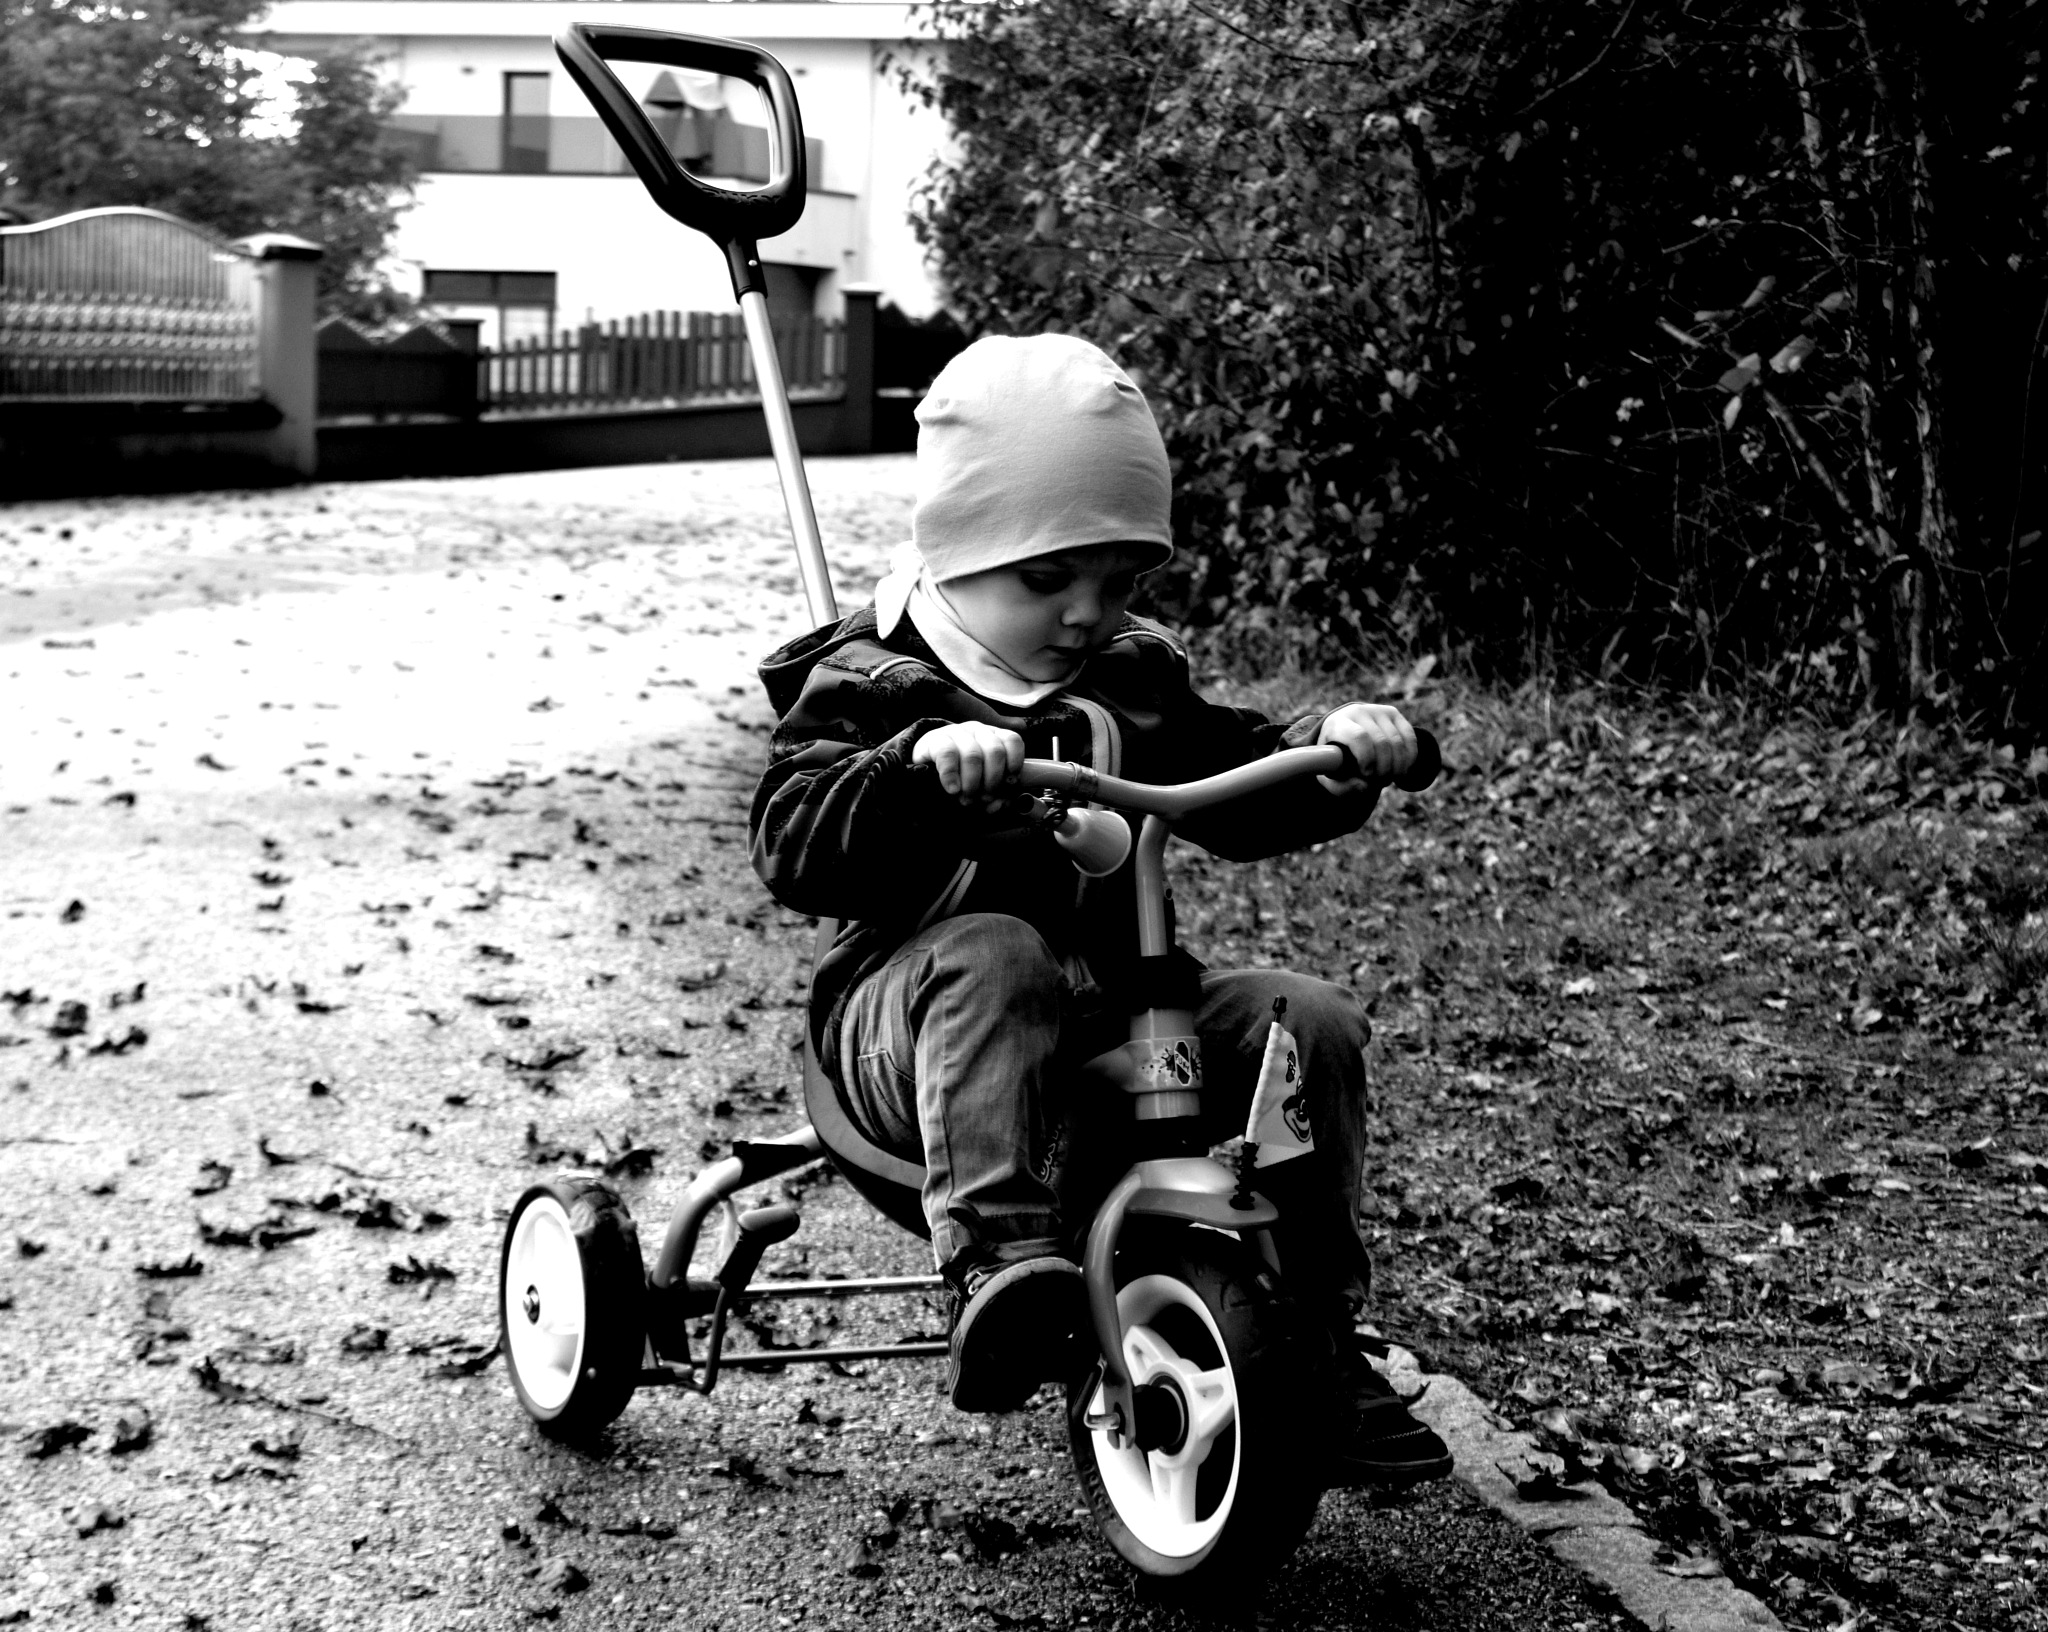 Biker_Child by PeterHaselstoner